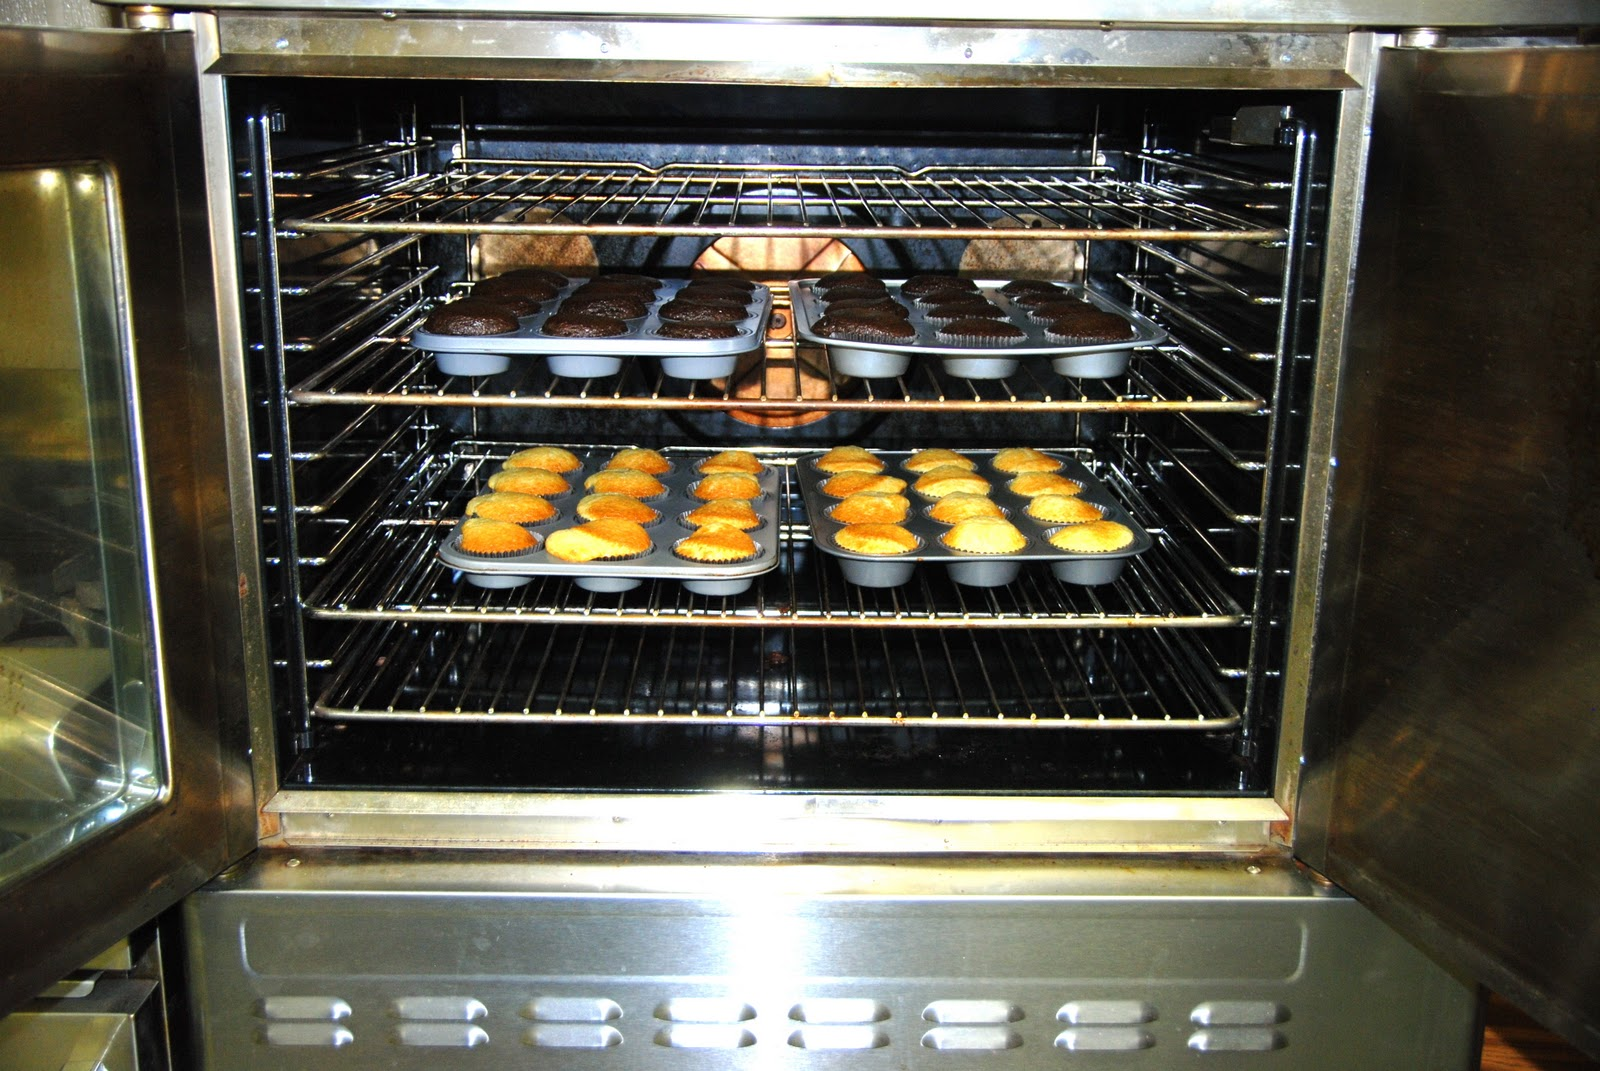 Cake In Oven ~ Convection oven for baking cakes